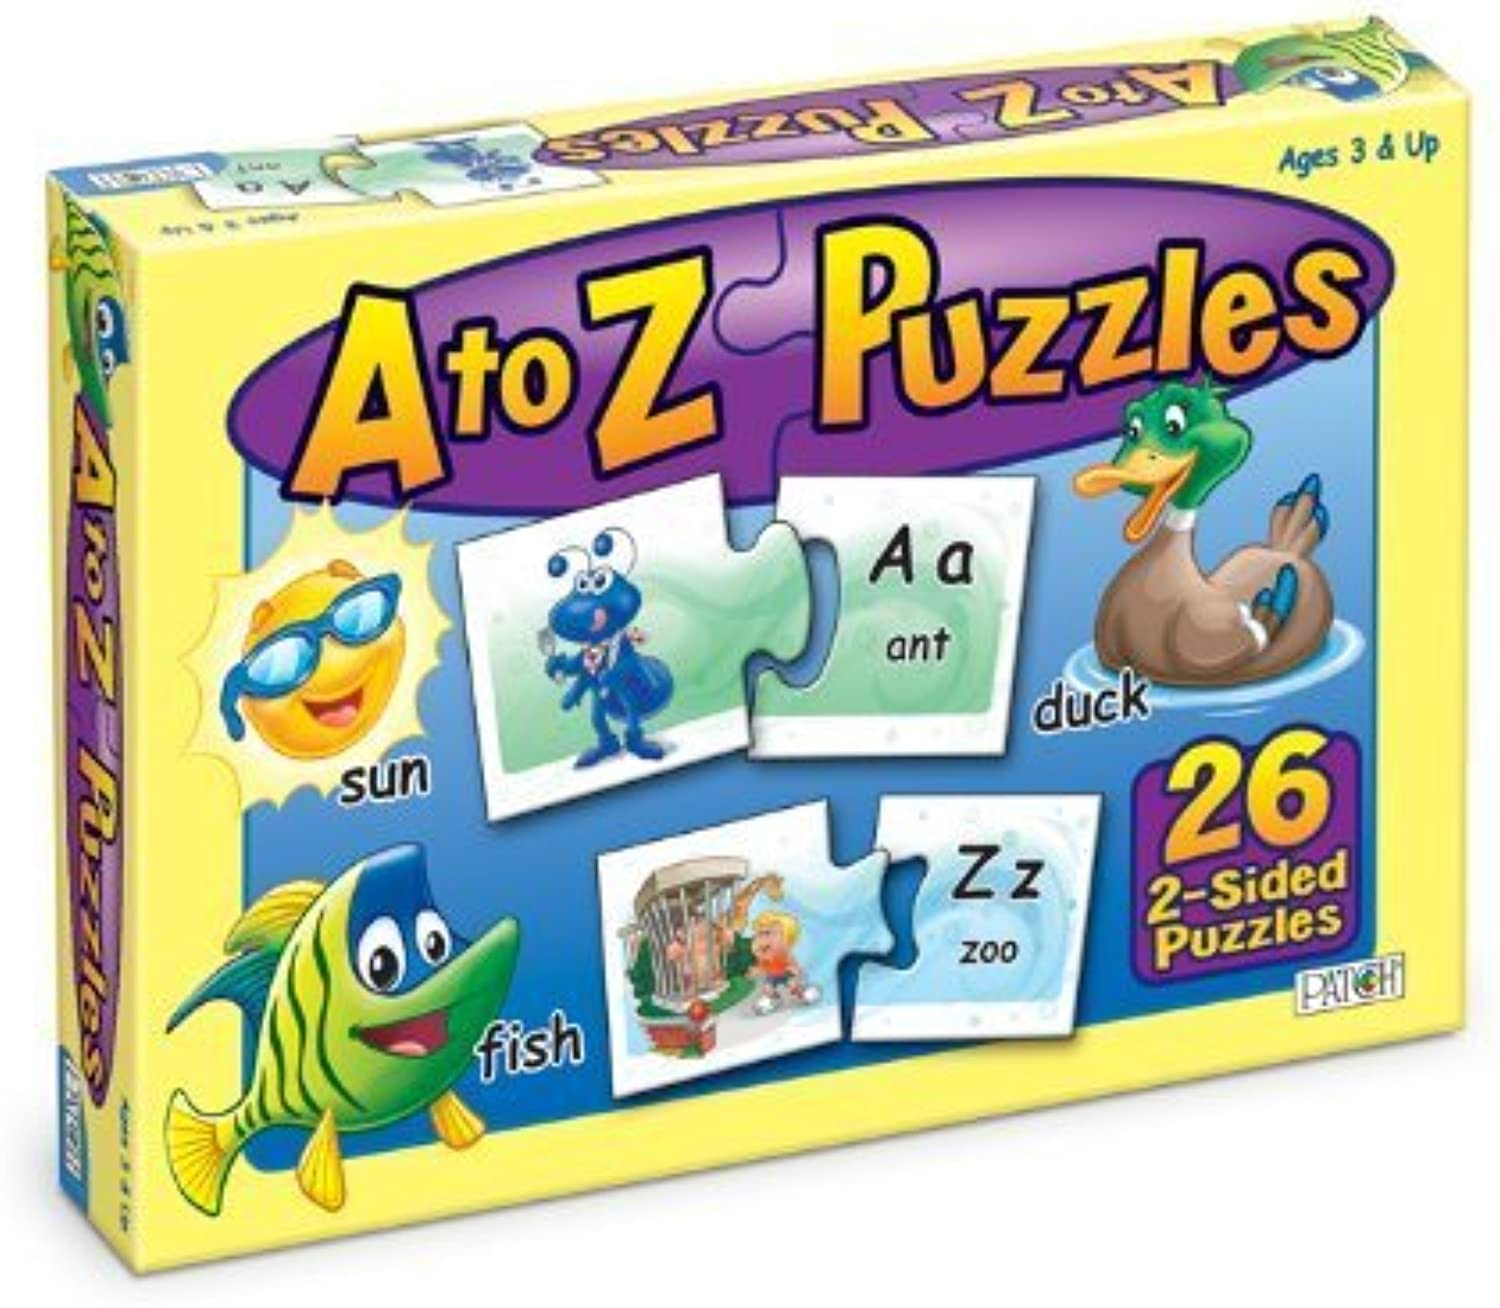 A to Z Puzzles by Patch Products